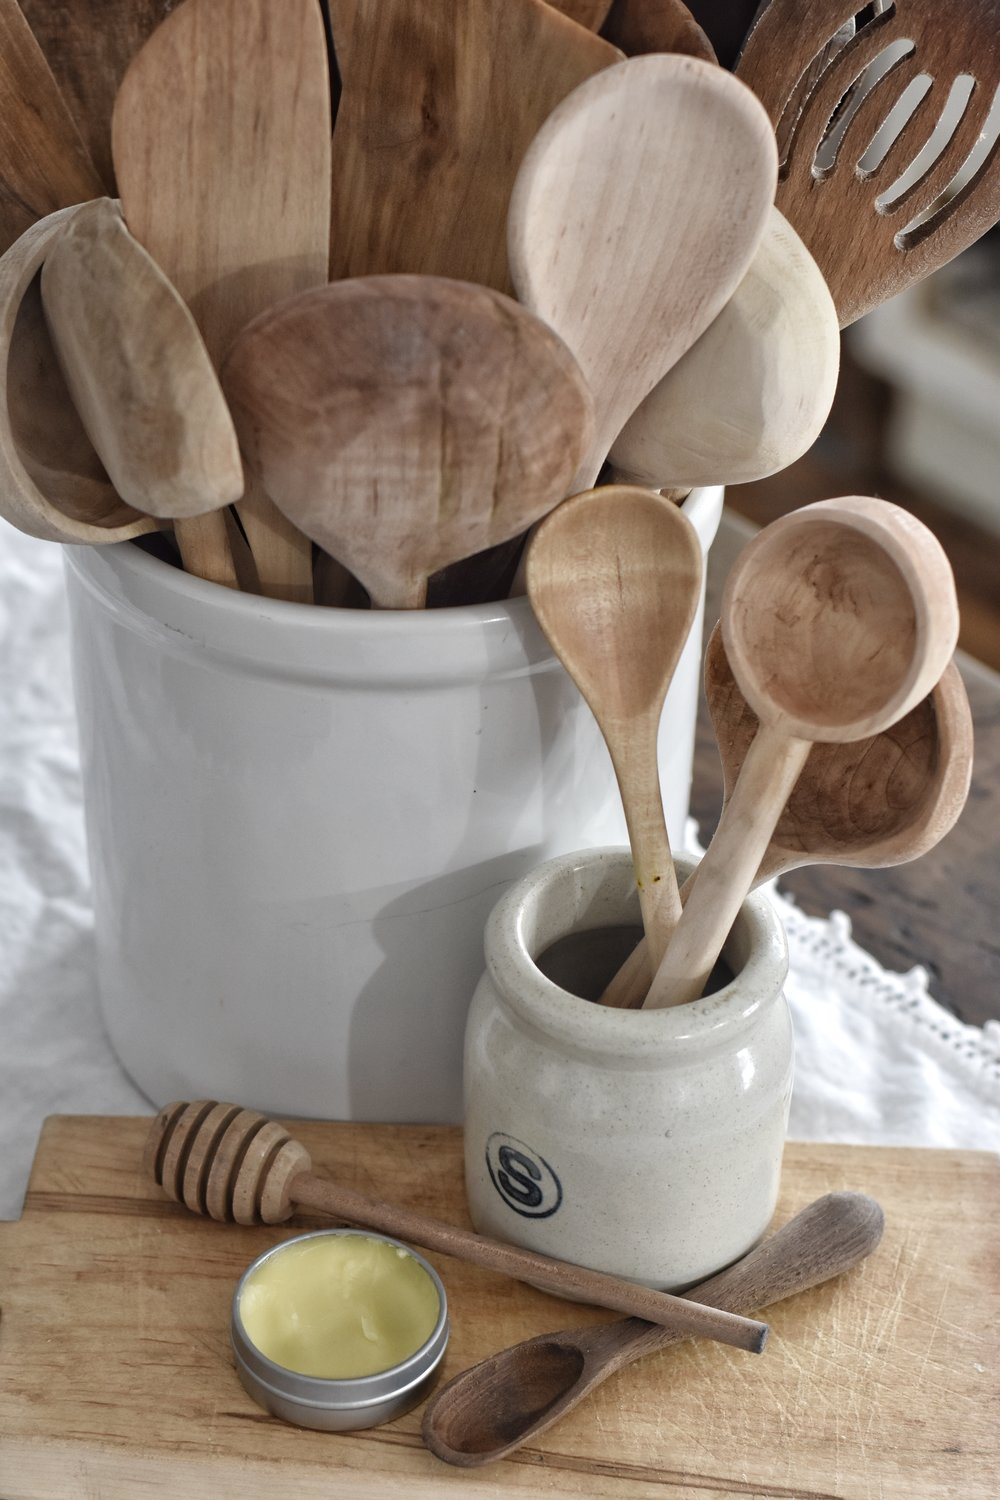 how to properly care for wooden utensils plus a recipe for spoon butter